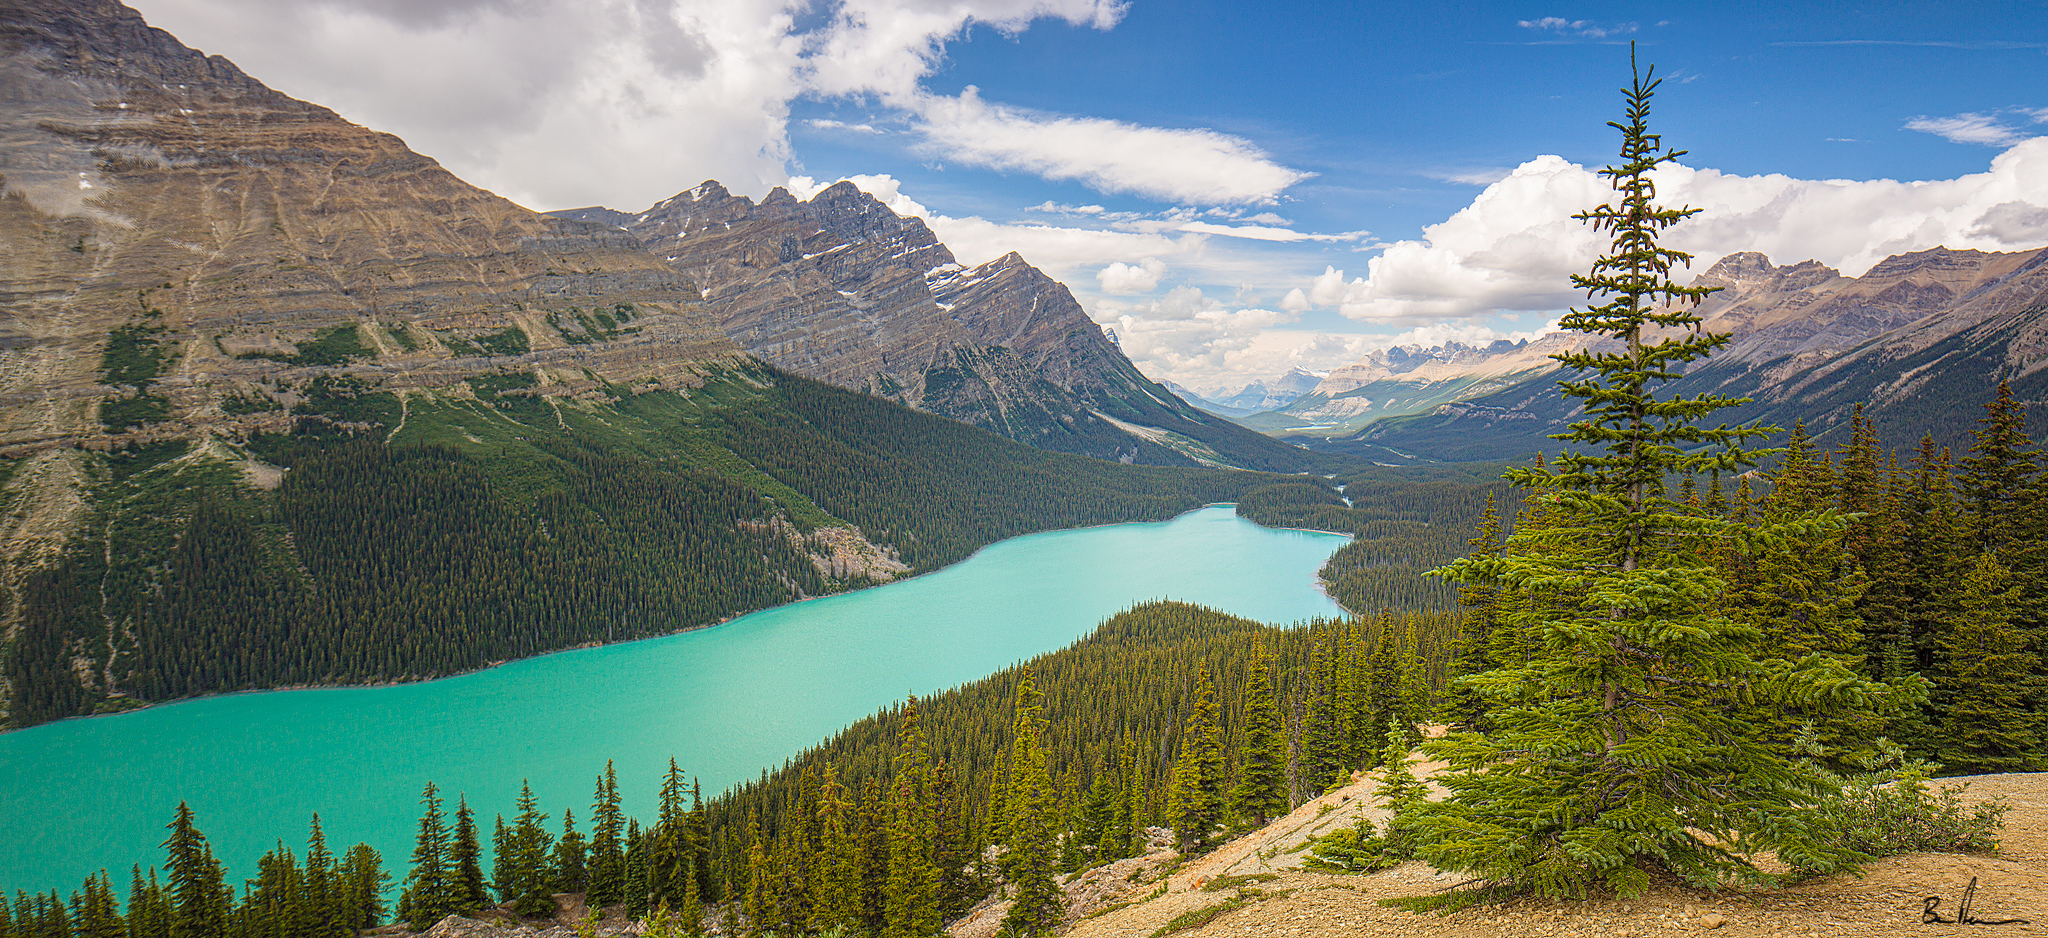 An early afternoon shot of Peyto lake in Banff National Park in Alberta Canada.